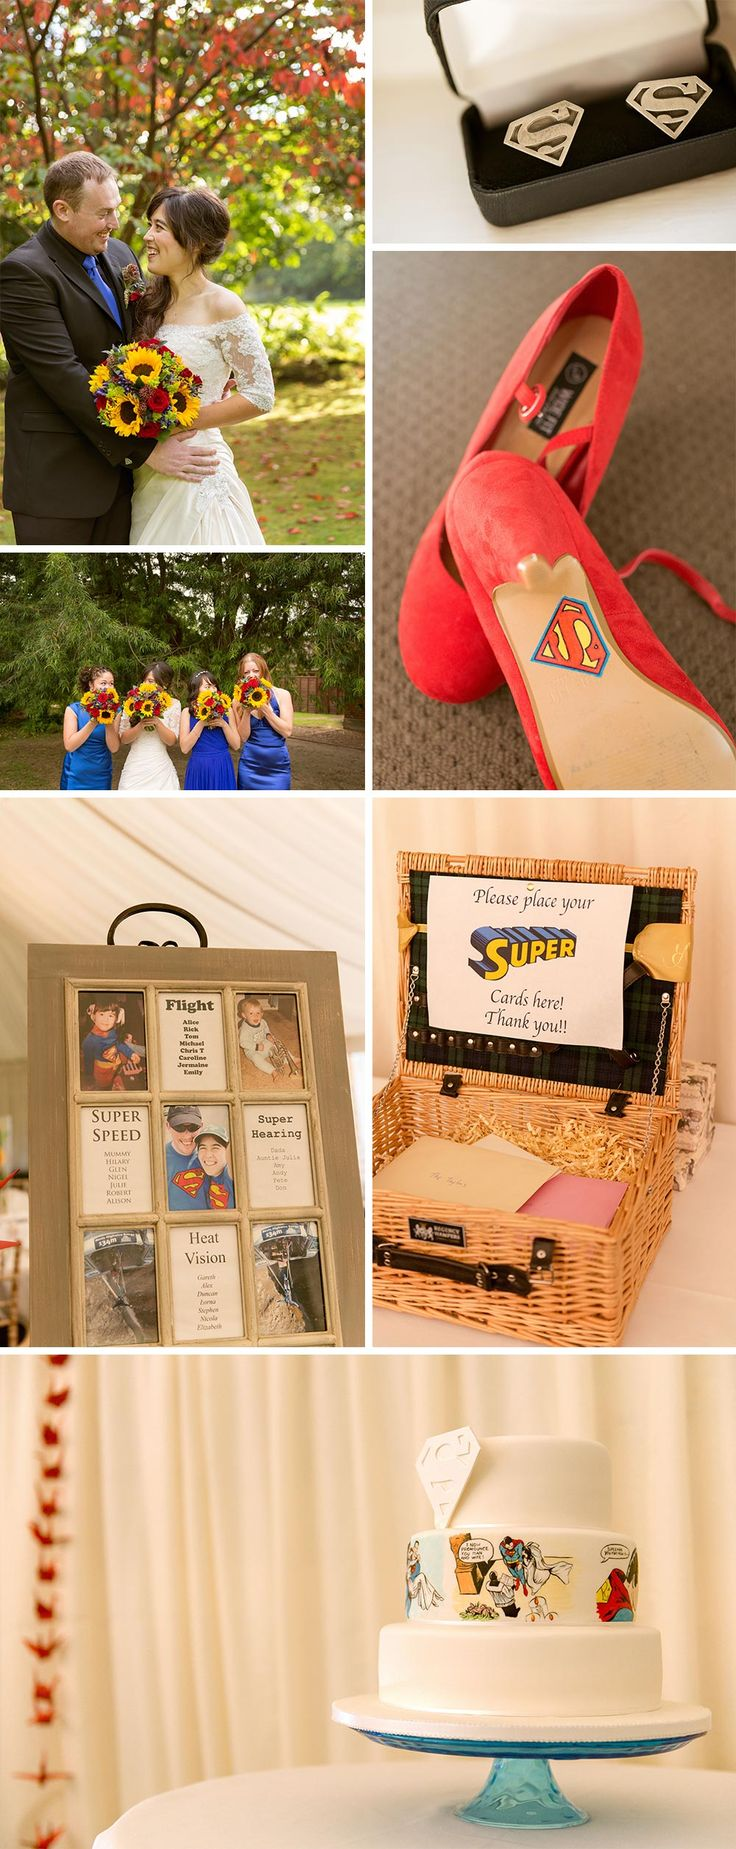 Alice and Rick managed to tastefully include their love of Superman in their wedding day, with lots of red, yellow and blue touches and a super-cool (excuse the pun) wedding cake. We especially love Alice's bouquet and her shoes - they're both perfect nods to the theme. If you're looking for more ideas, don't miss our guide to having a superhero themed wedding. Photography by Samantha Davis Photography